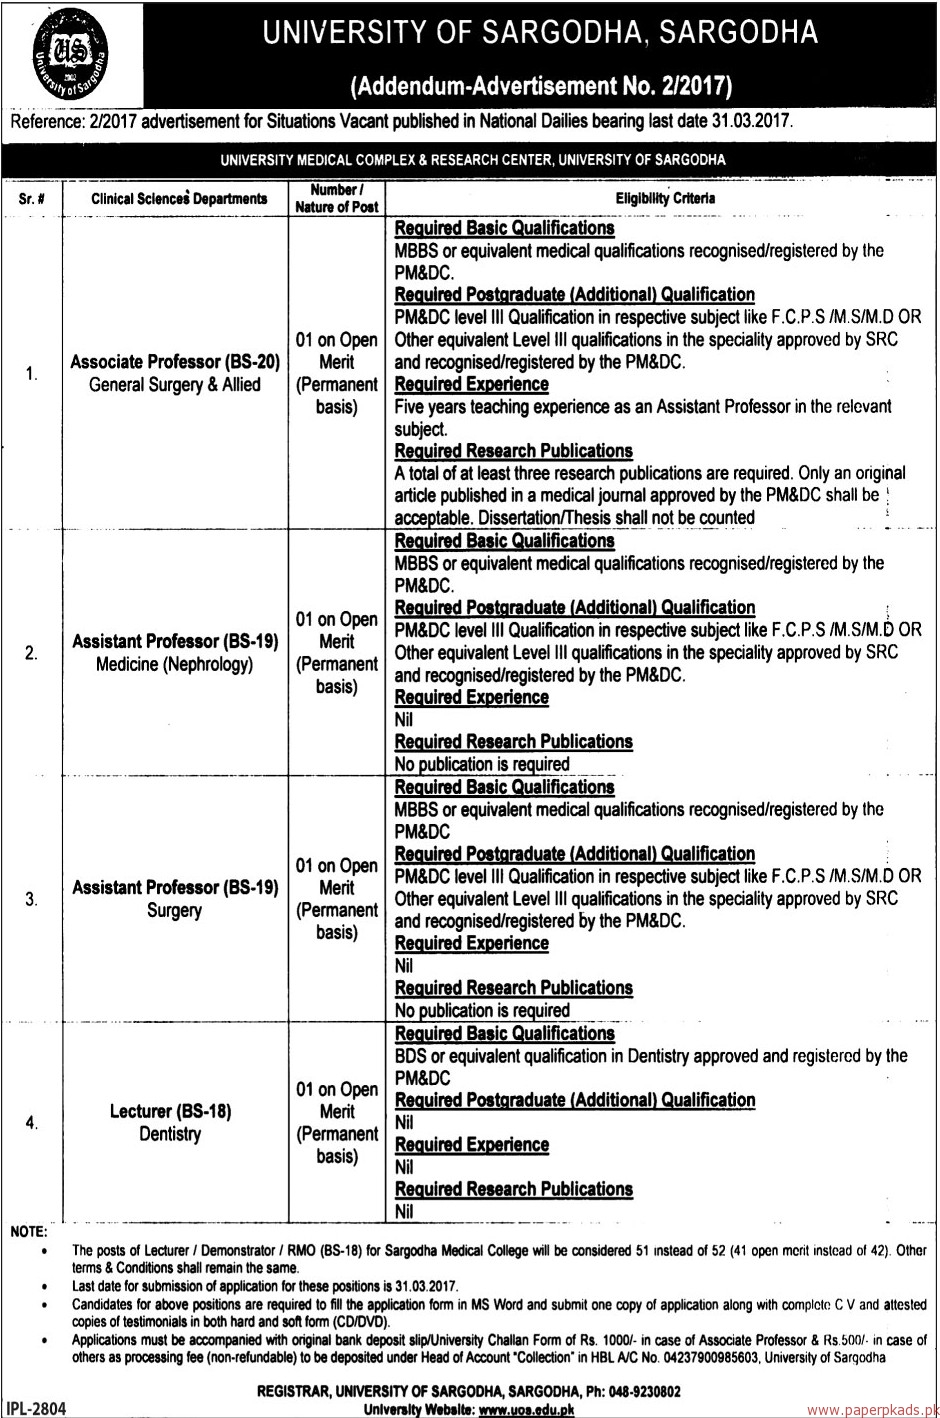 University of Sargodha Jobs - The News Jobs ads 17 March 2017